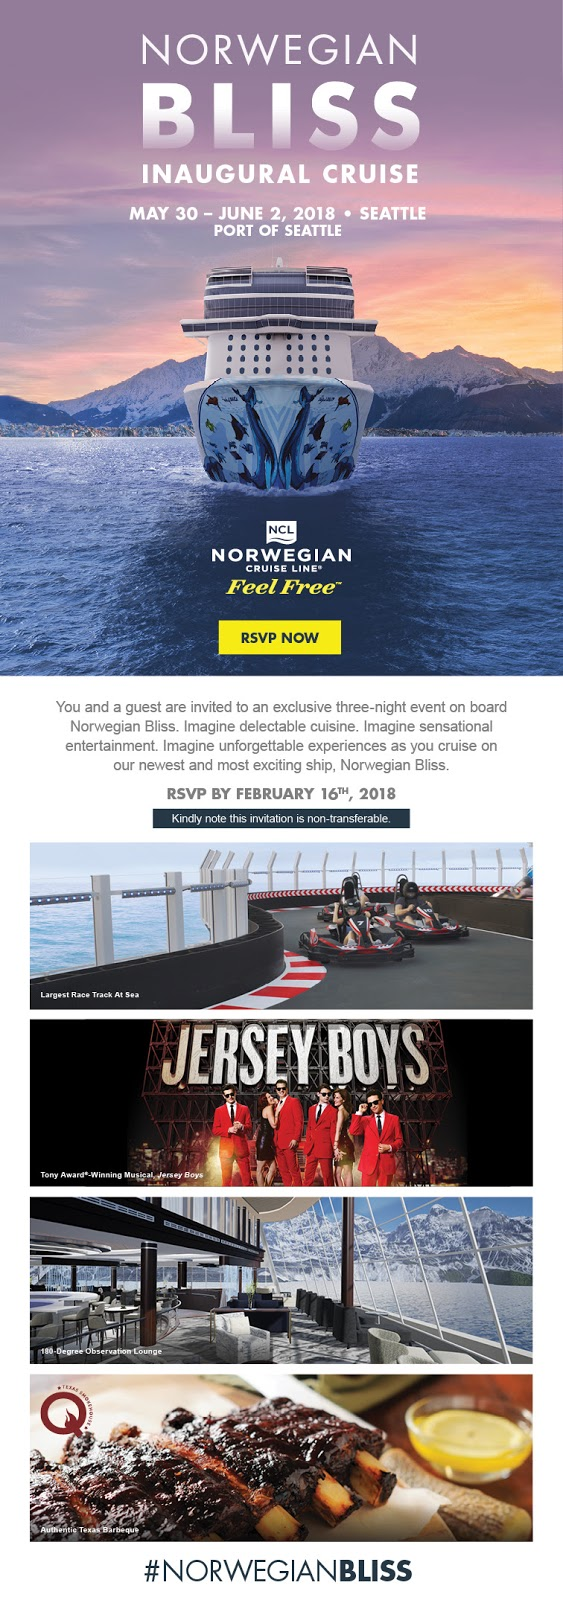 Press Trip on the Norwegian Bliss